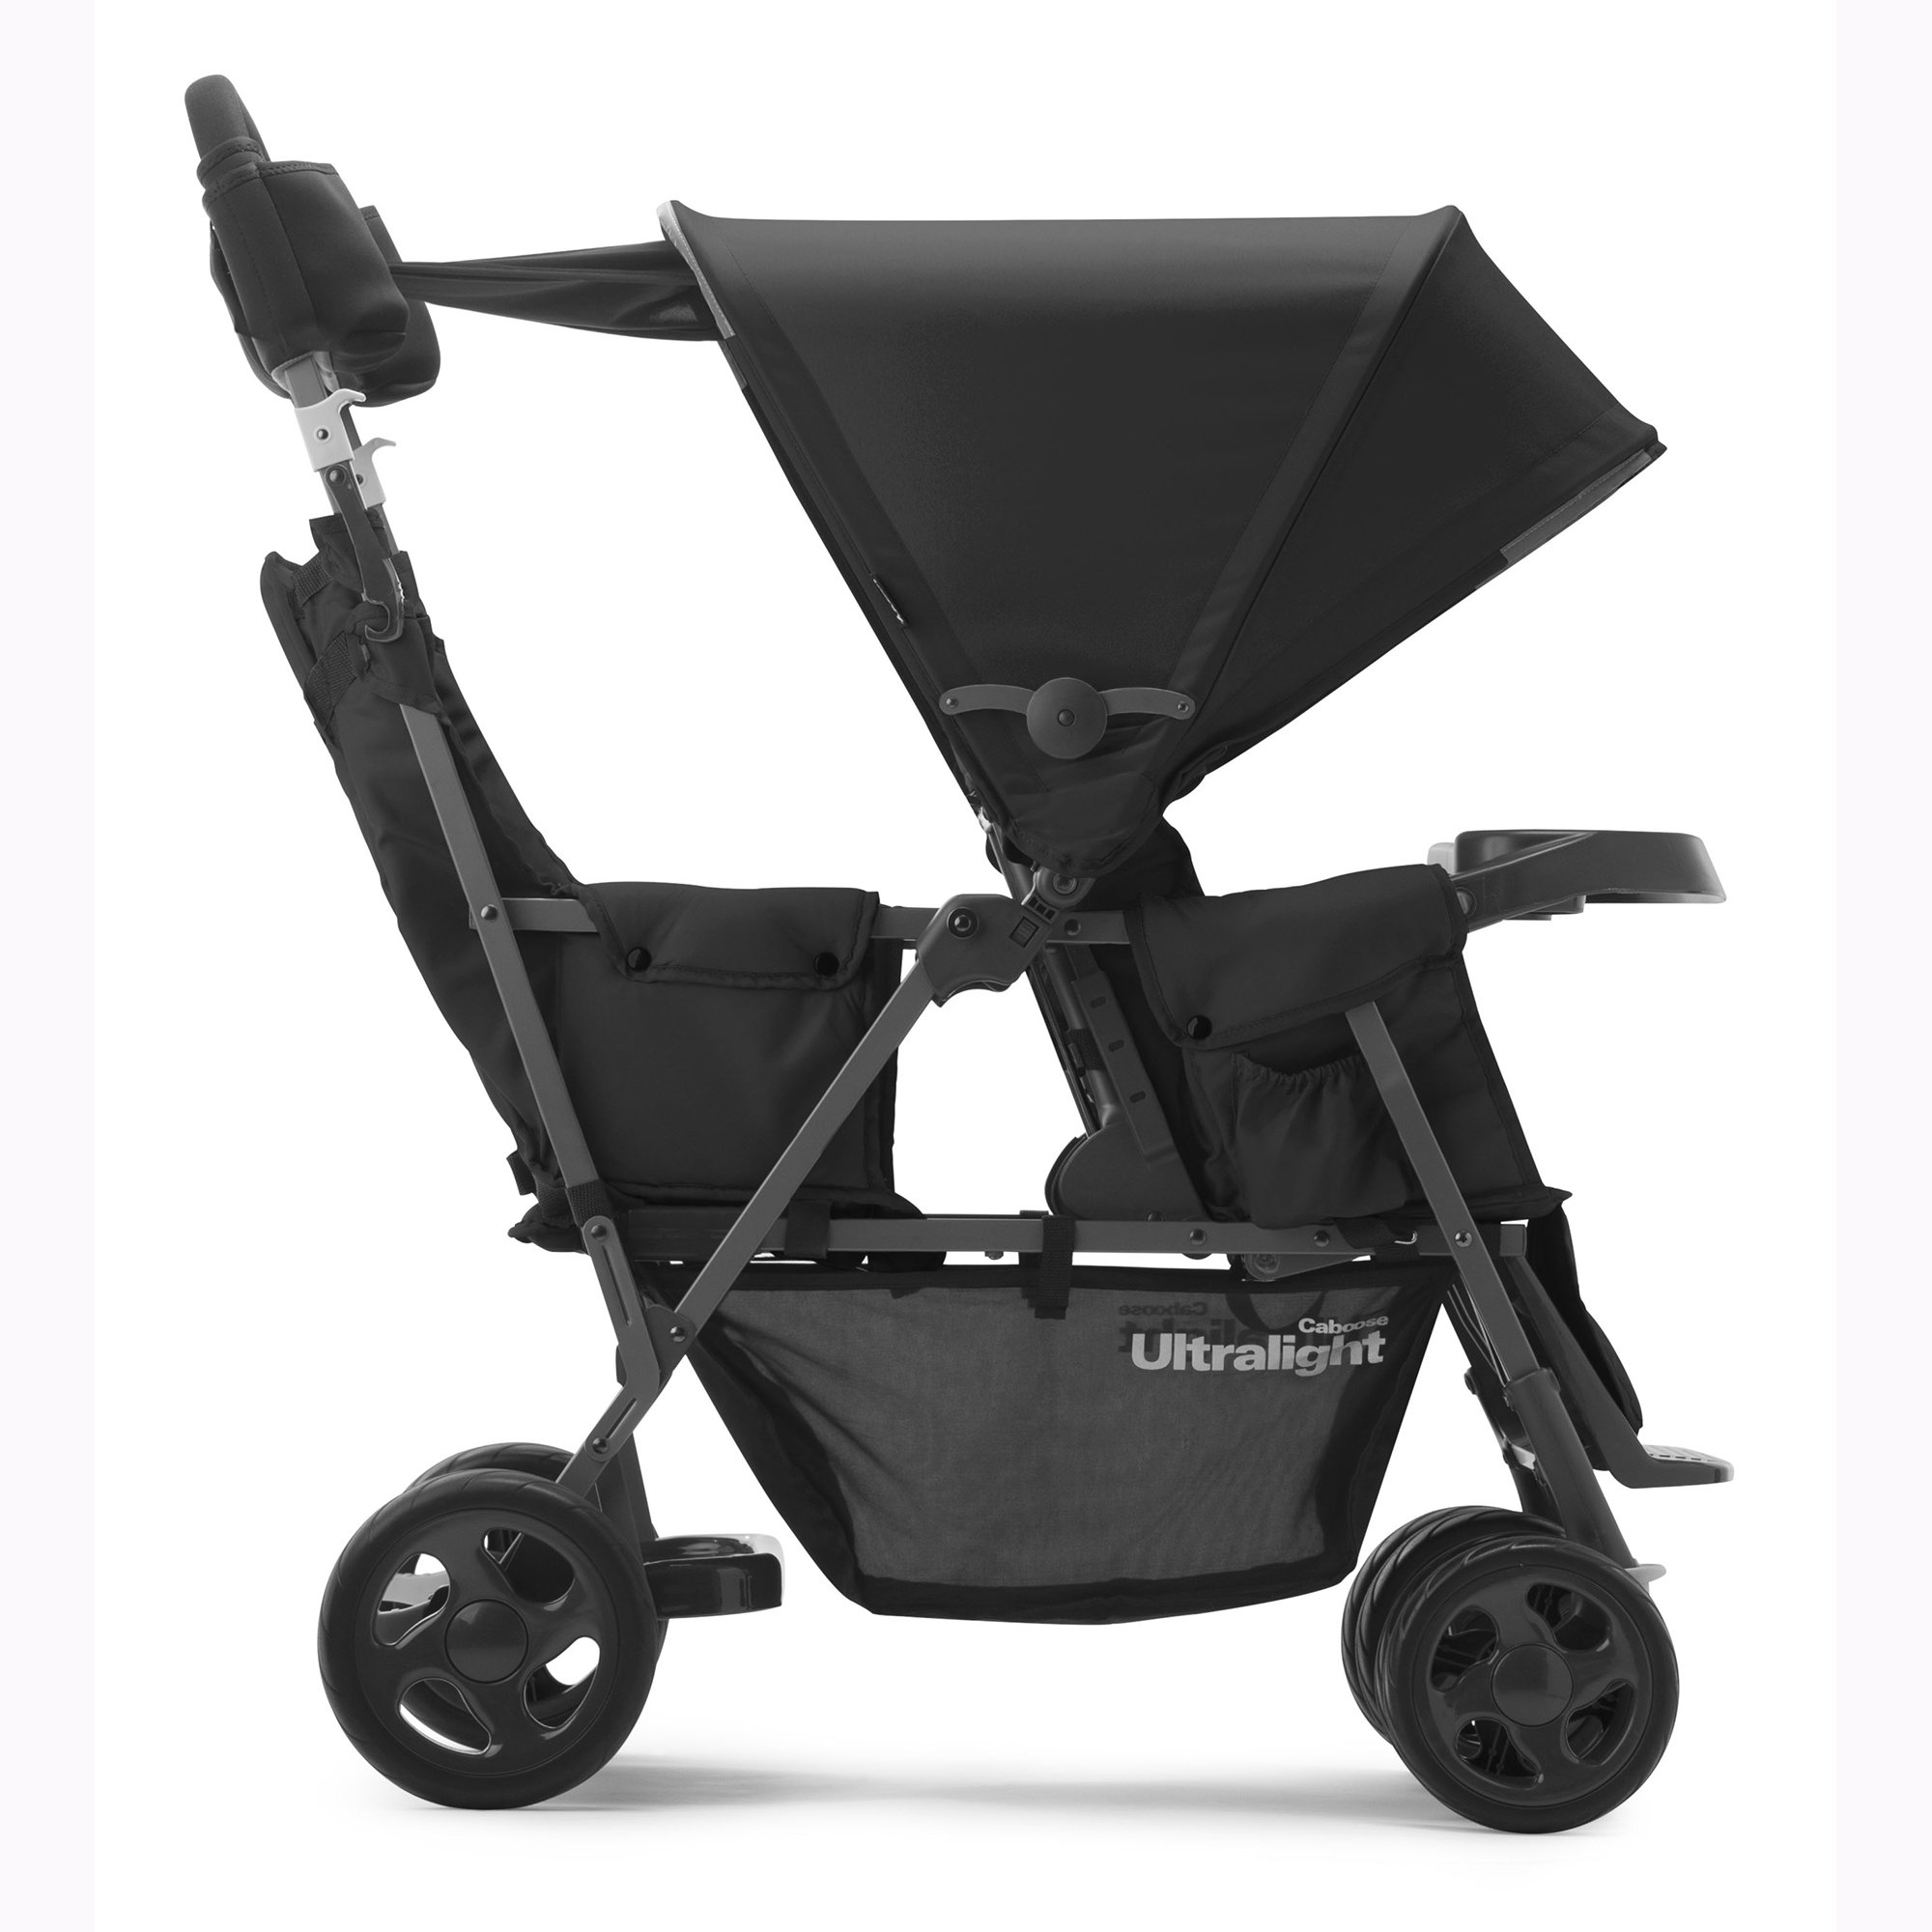 JOOVY Caboose Too Ultralight Graphite Stand-On Tandem Stroller, Black by Joovy (Image #2)